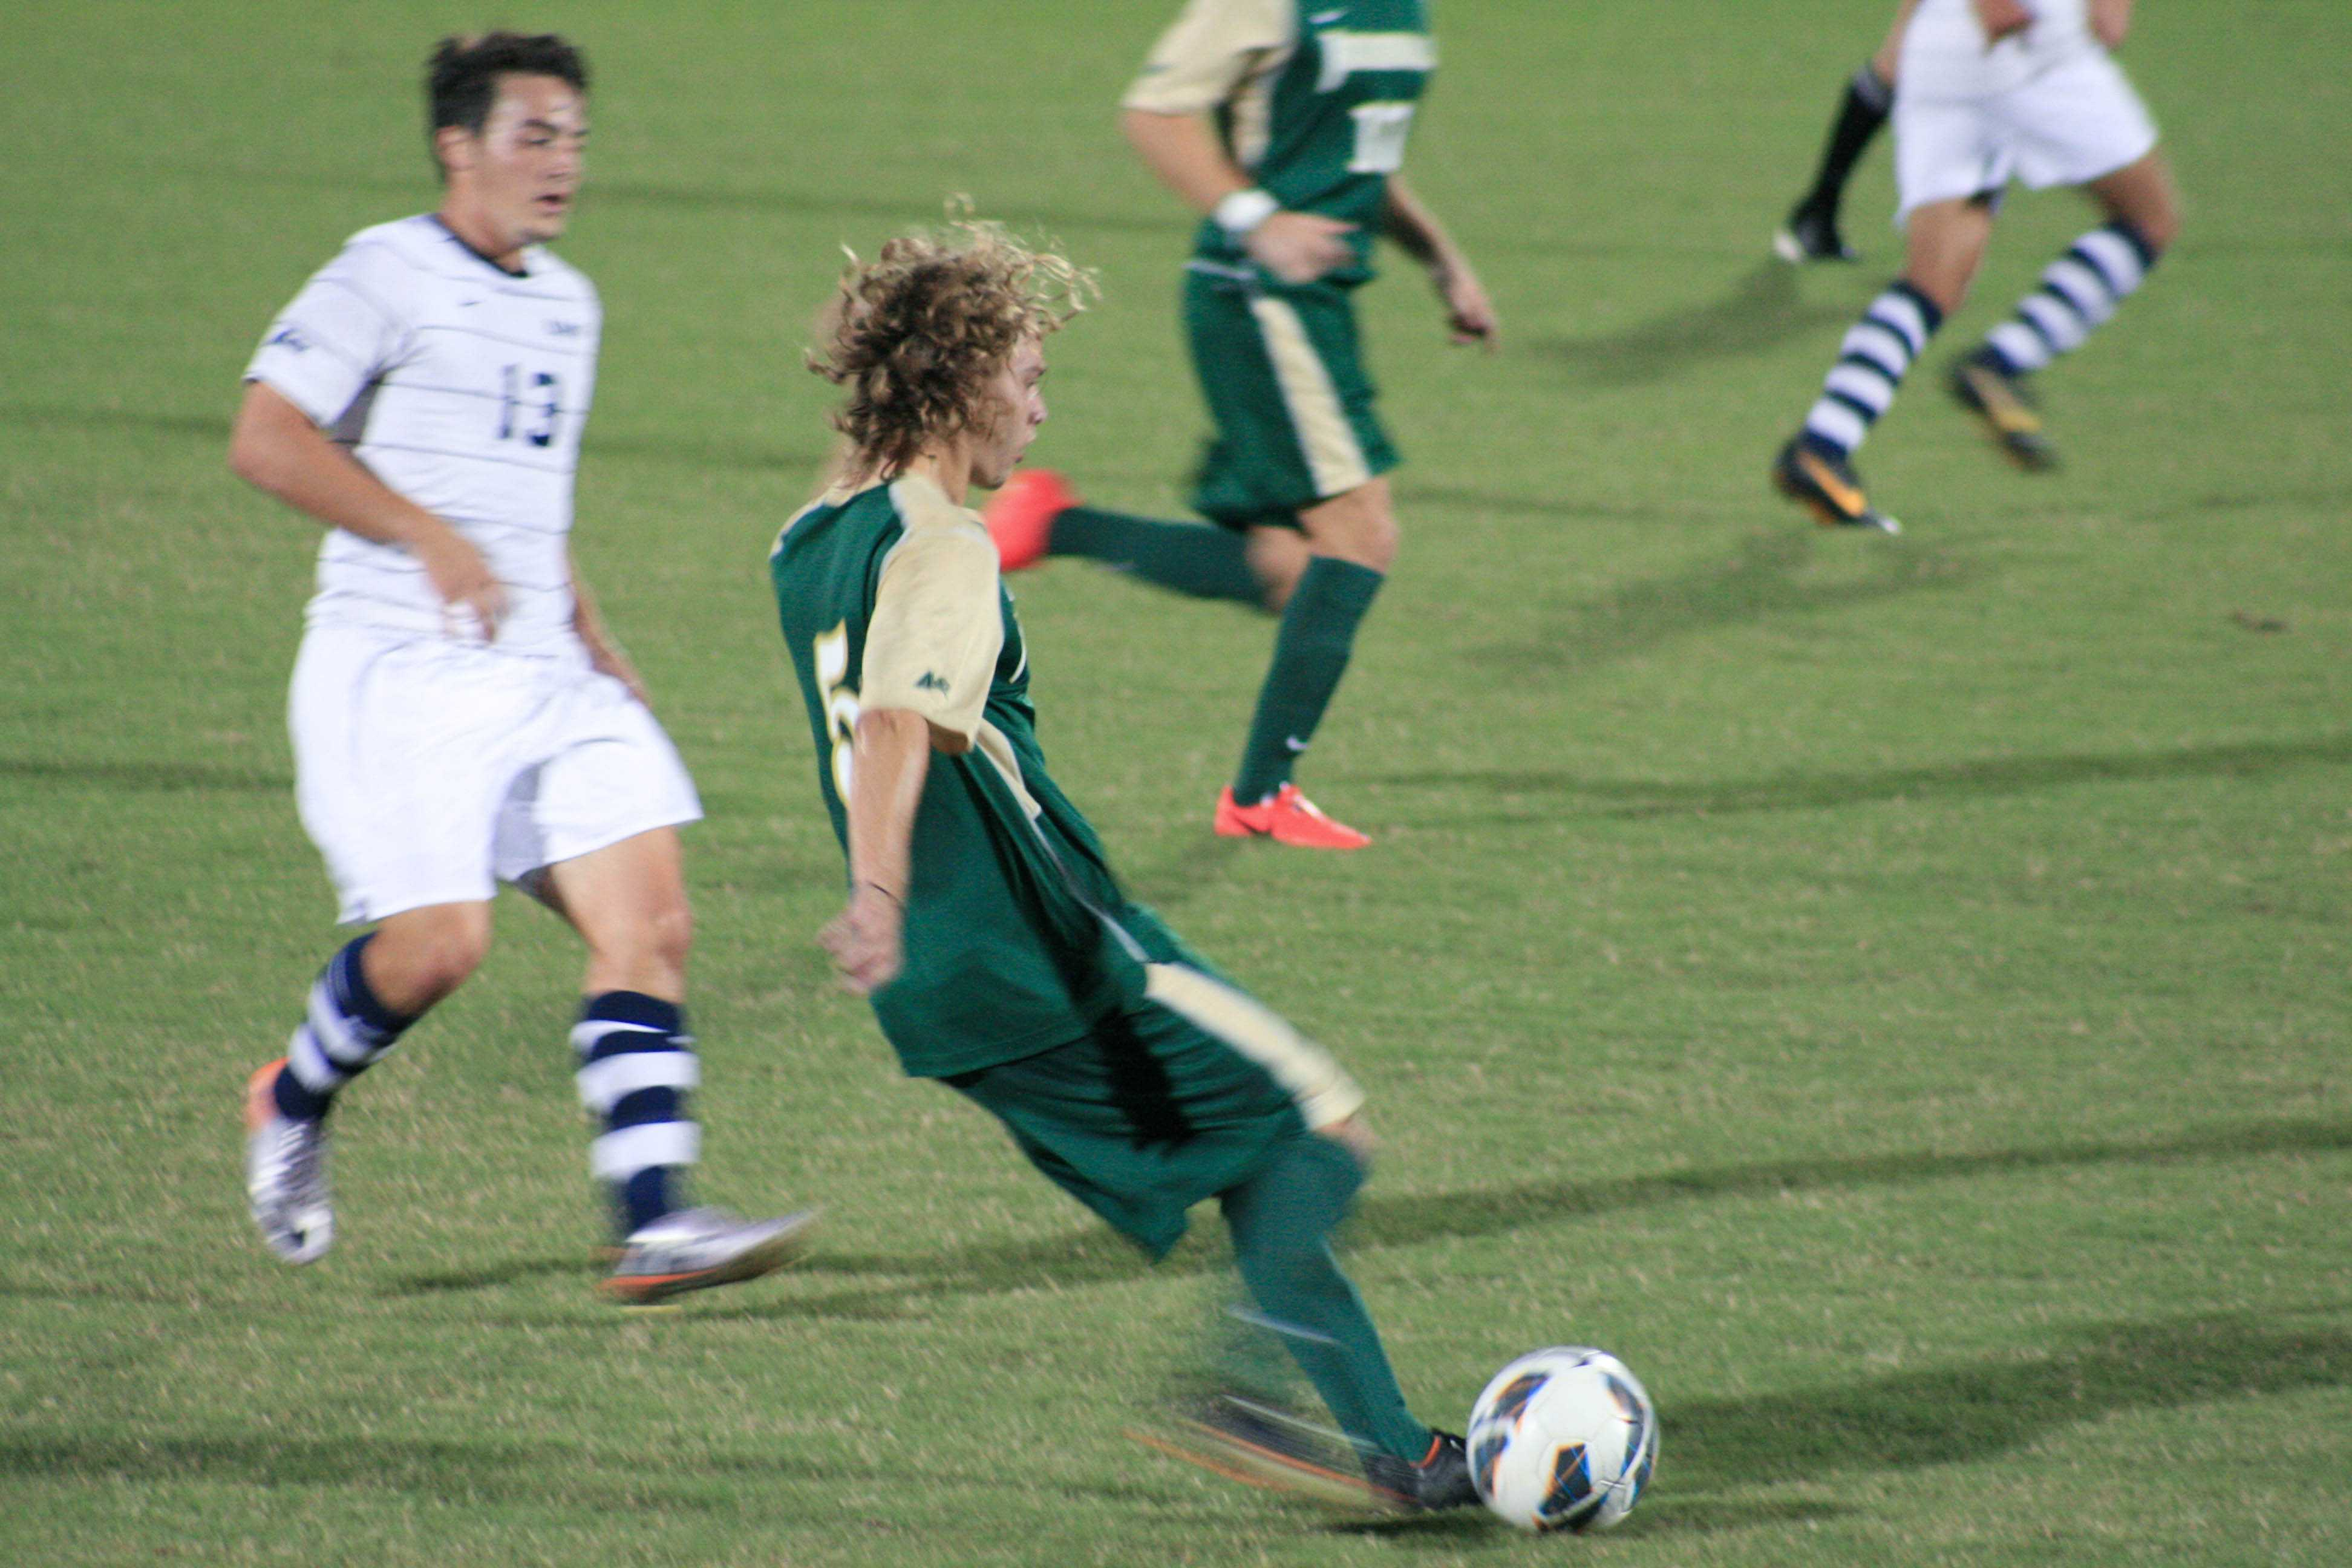 Junior captain Griffin Kelly crosses a pass down the pitch.